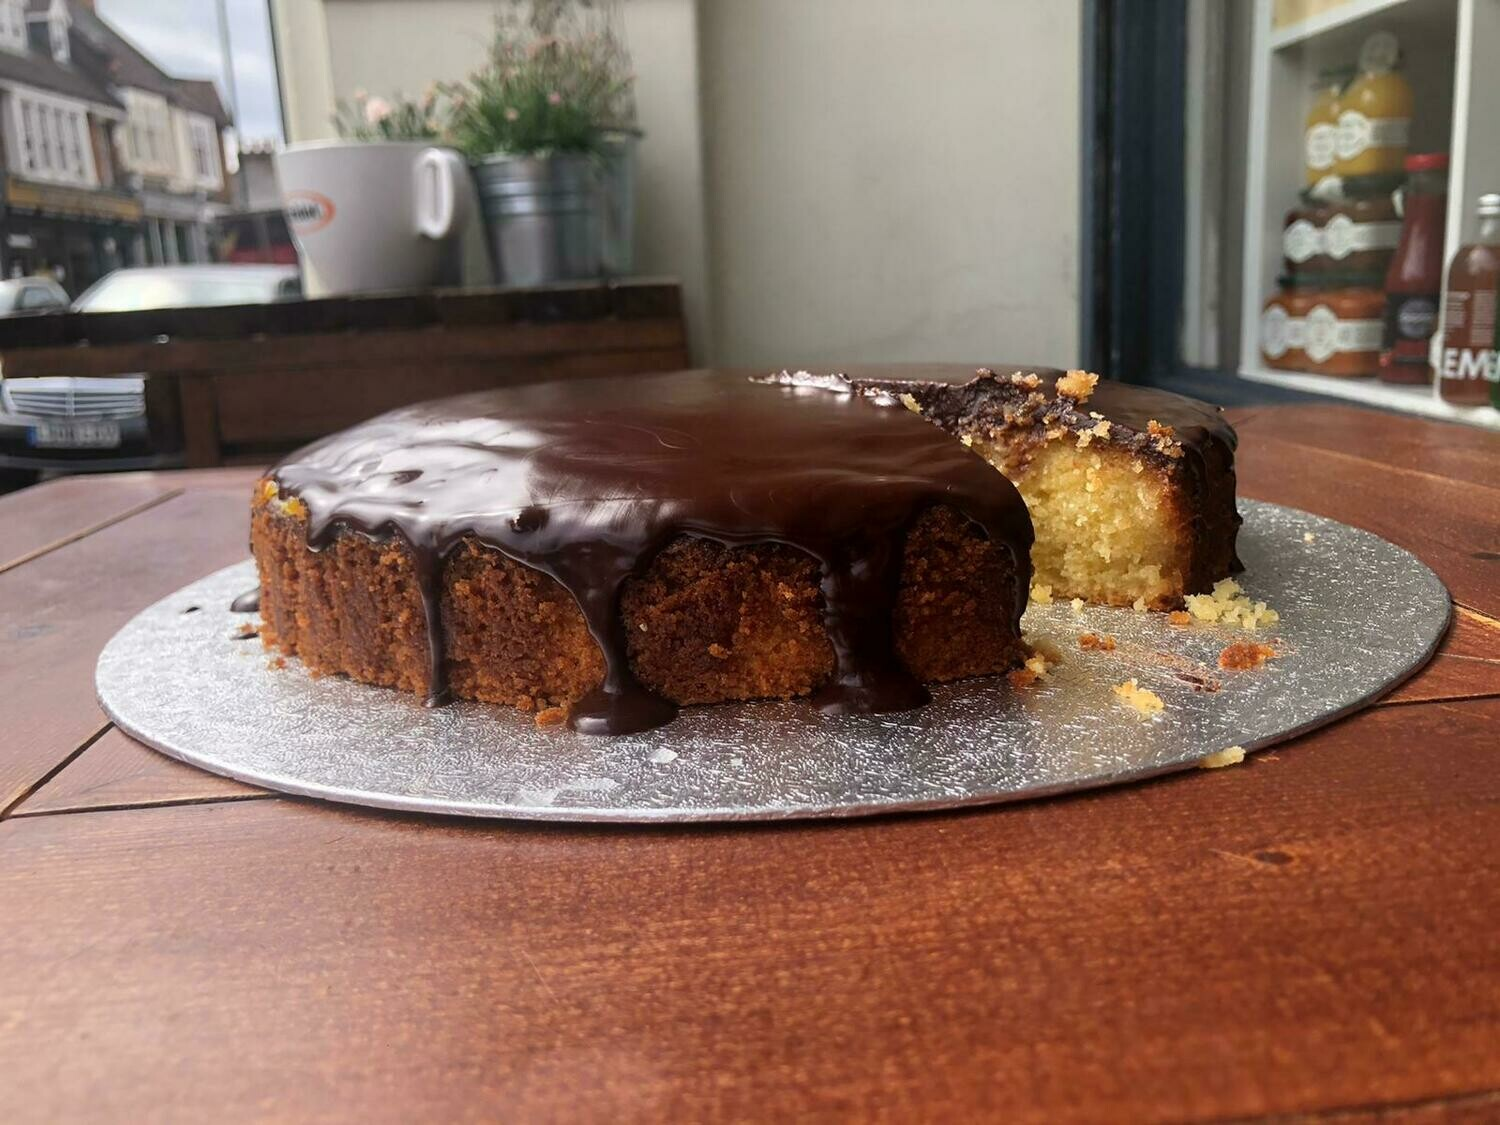 Clementine and Almond Cake with Chocolate Ganache